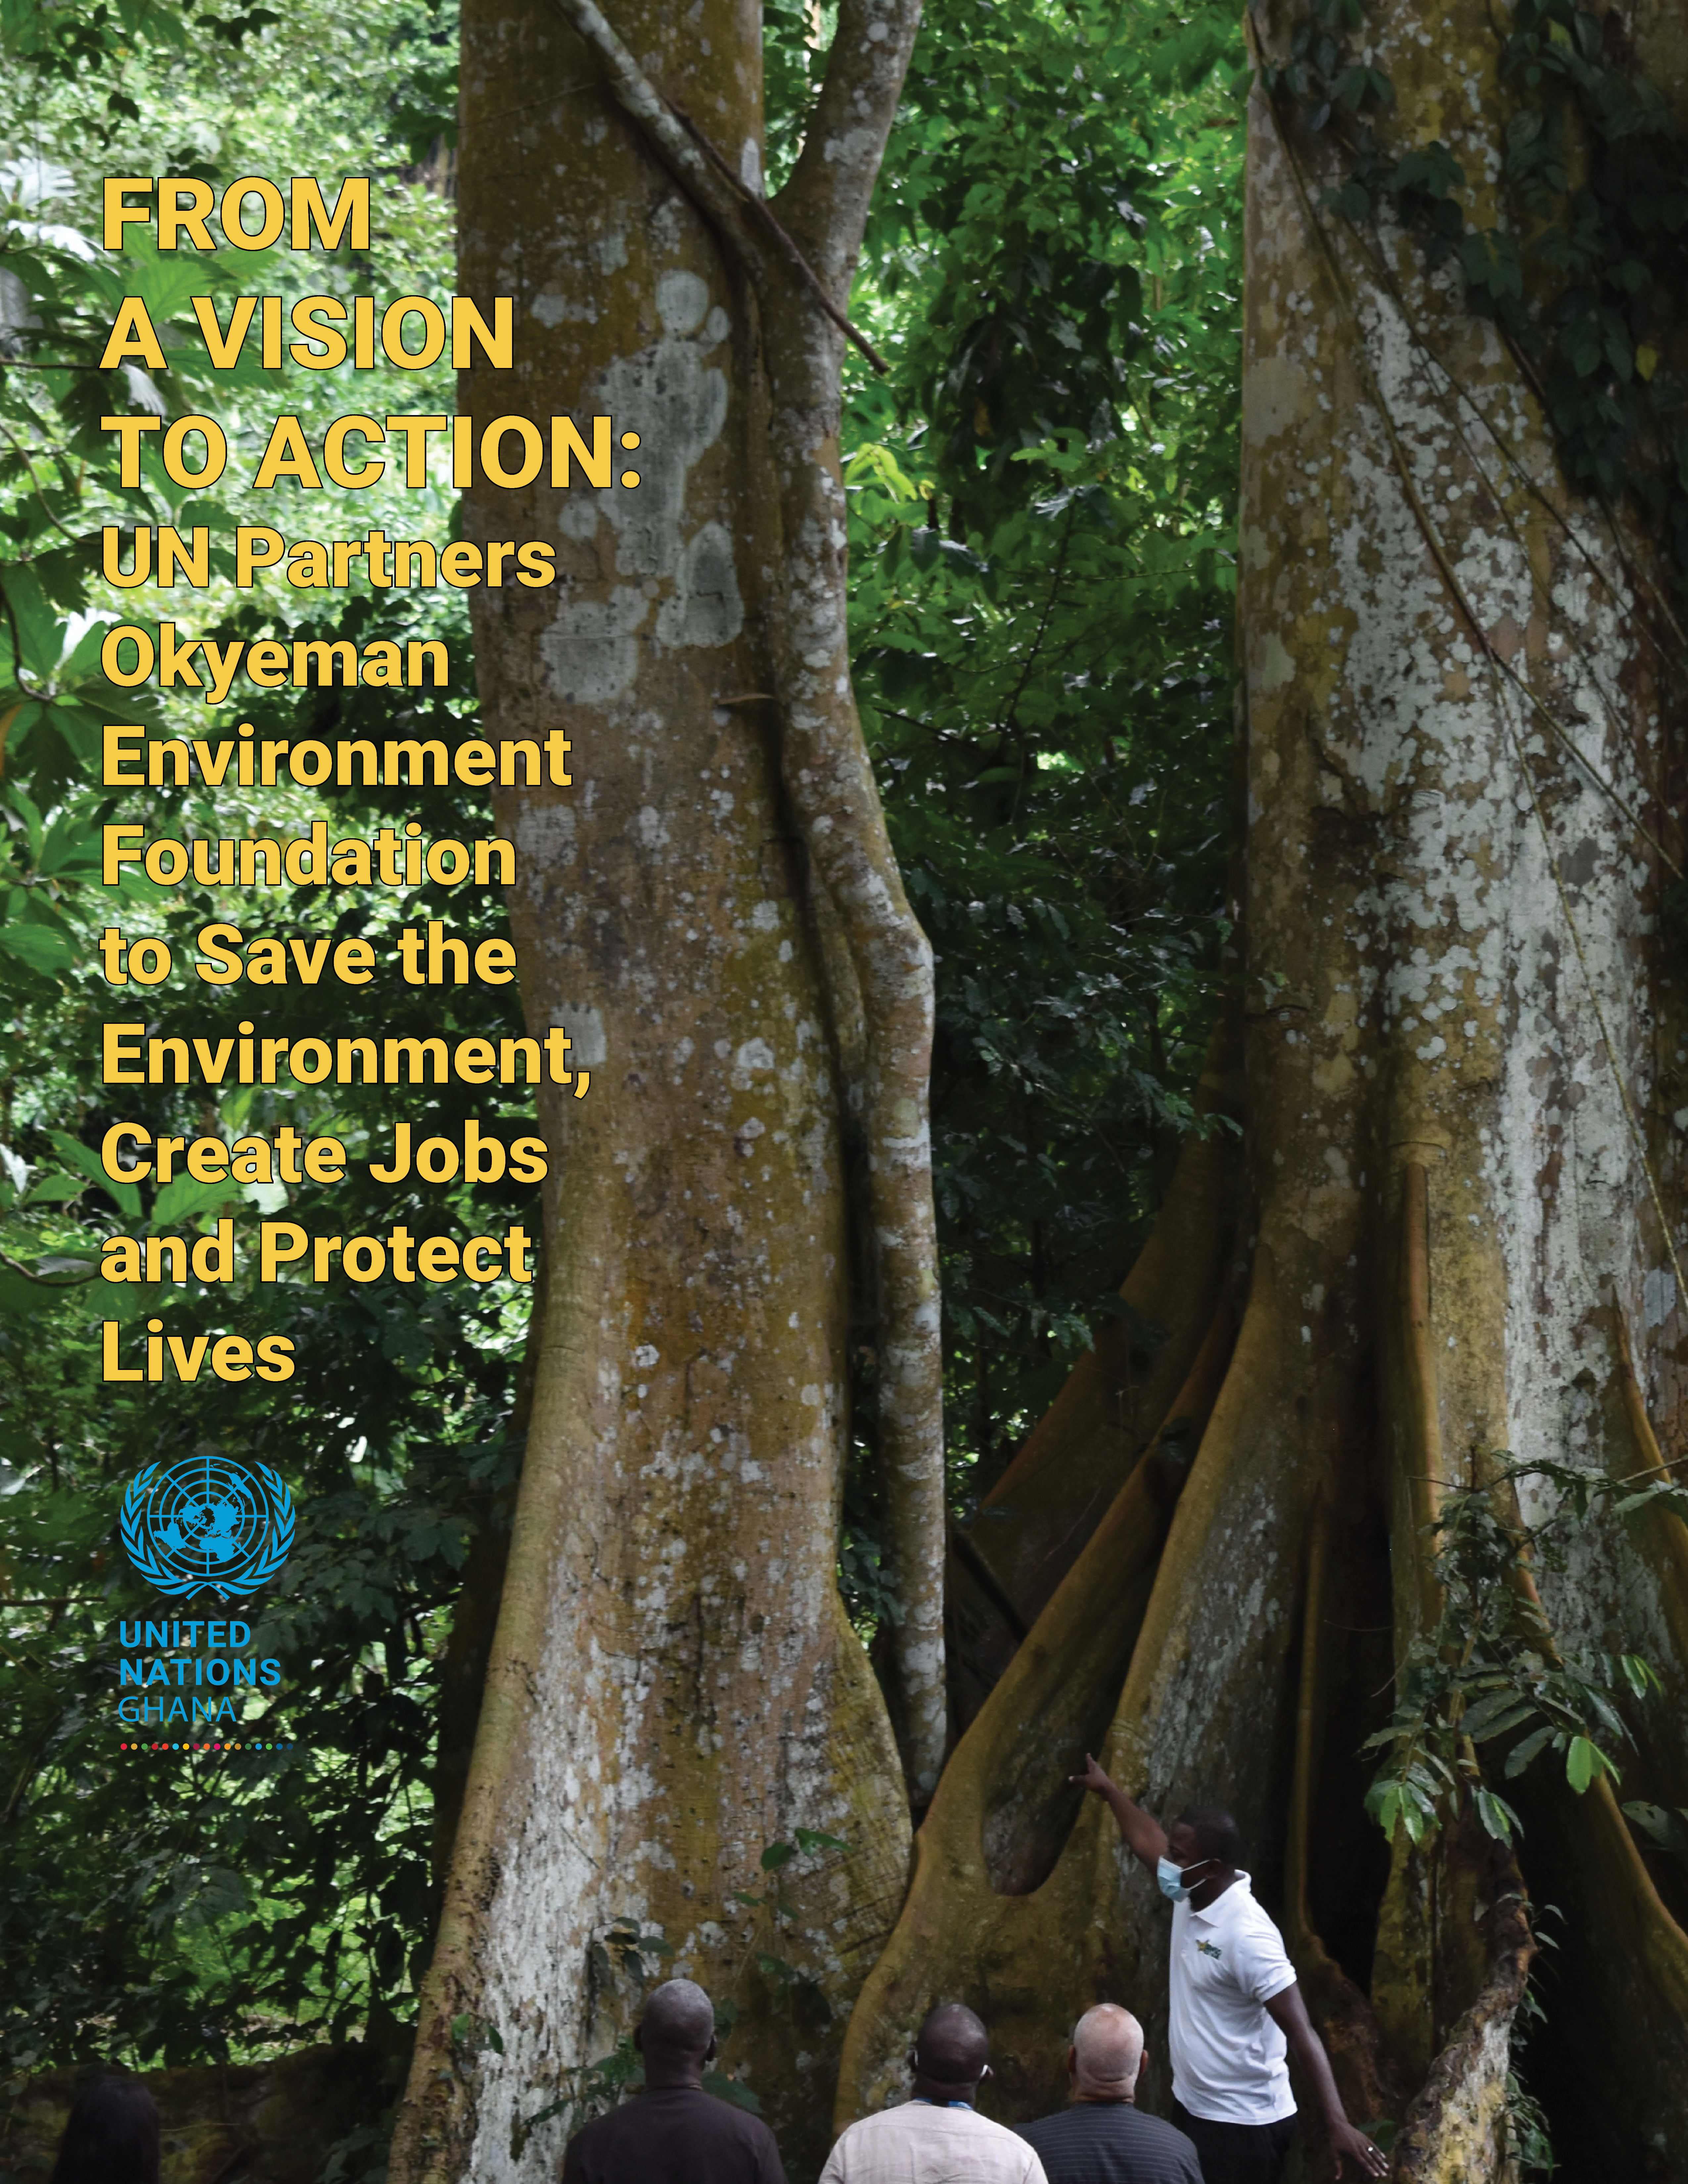 From a Vision to Action: UN Partners Okyeman Environment Foundation to Save the Environment, Create Jobs and Protect Lives